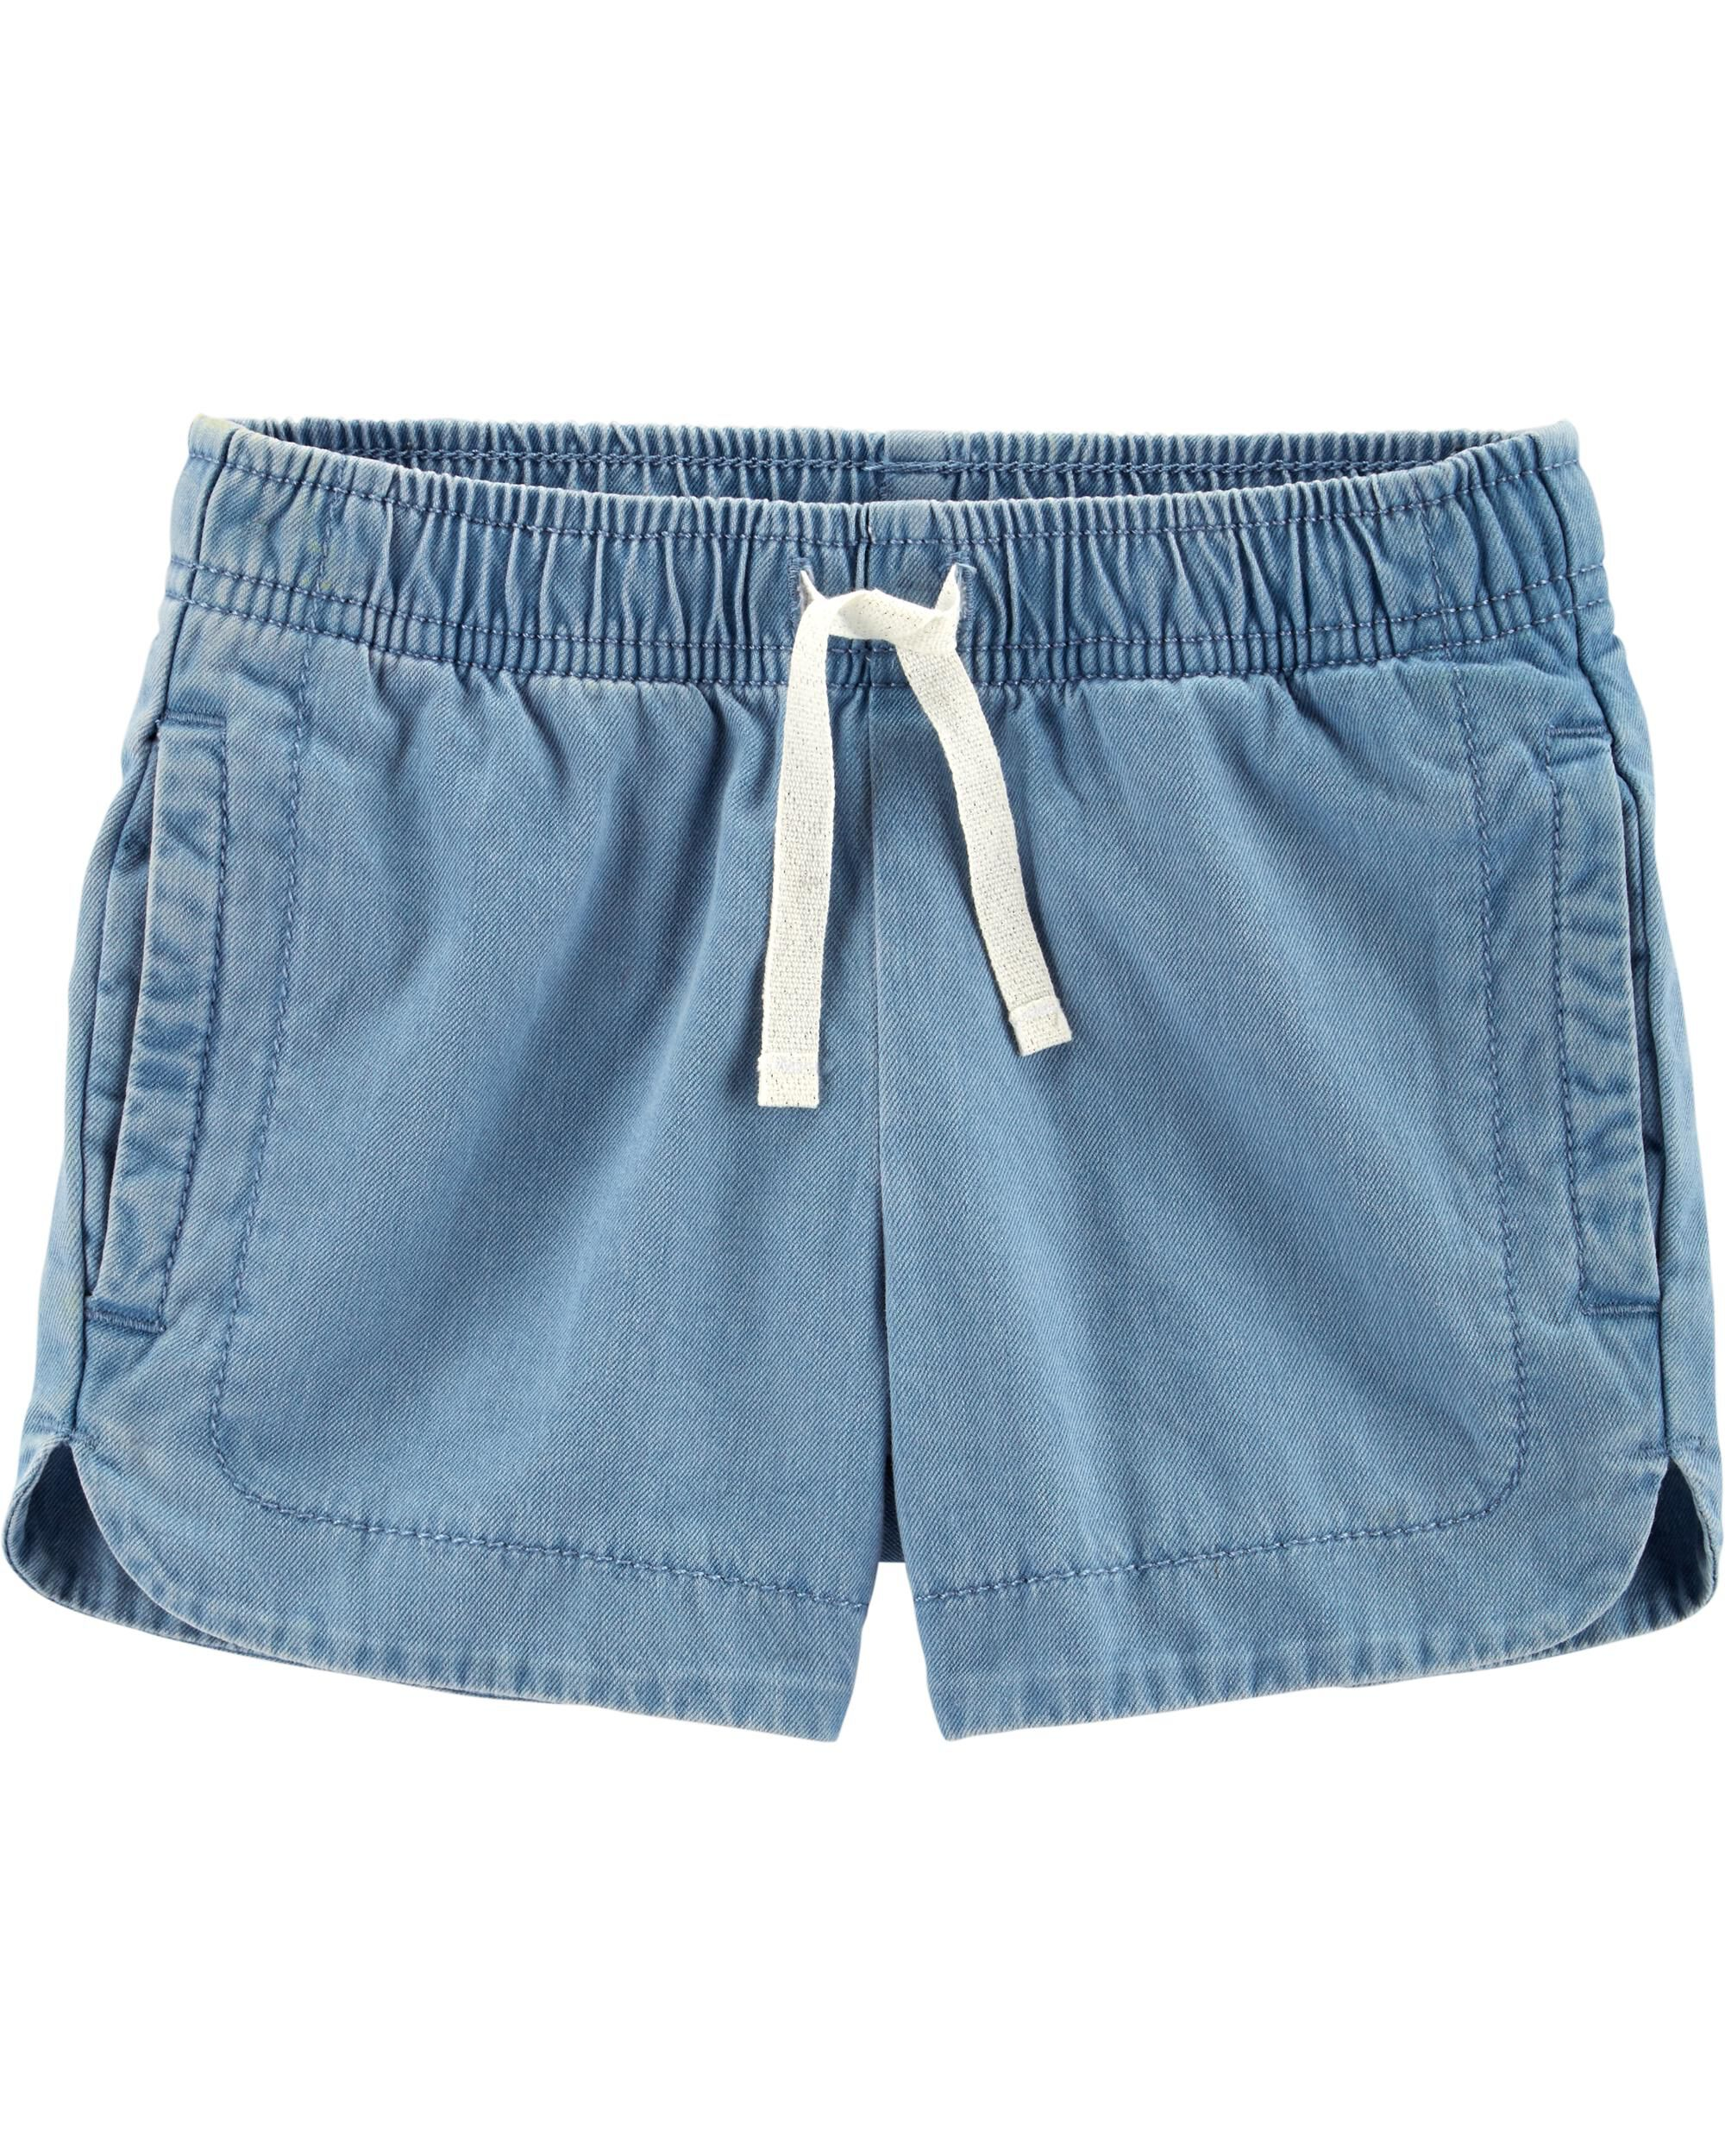 *Clearance*  Pull-On Cotton Shorts